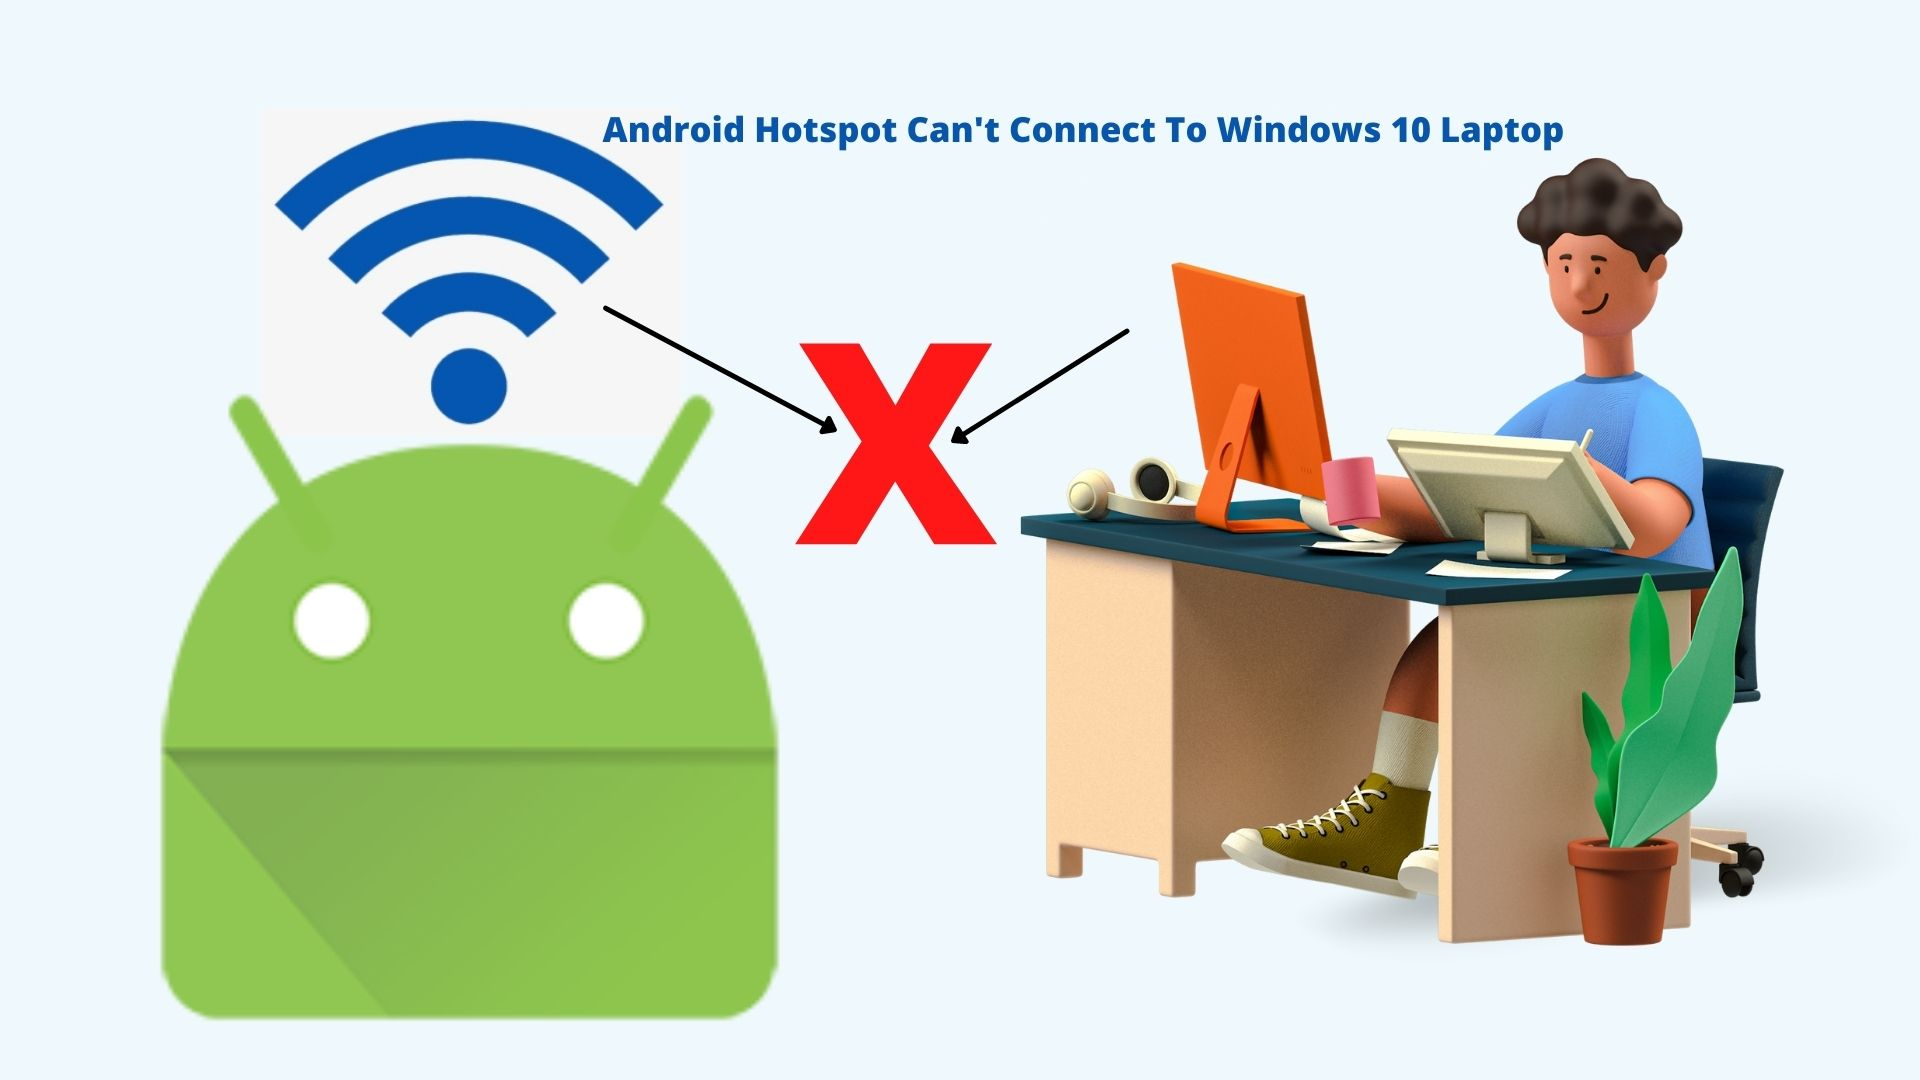 Android Hotspot Can't Connect To Windows 10 Laptop